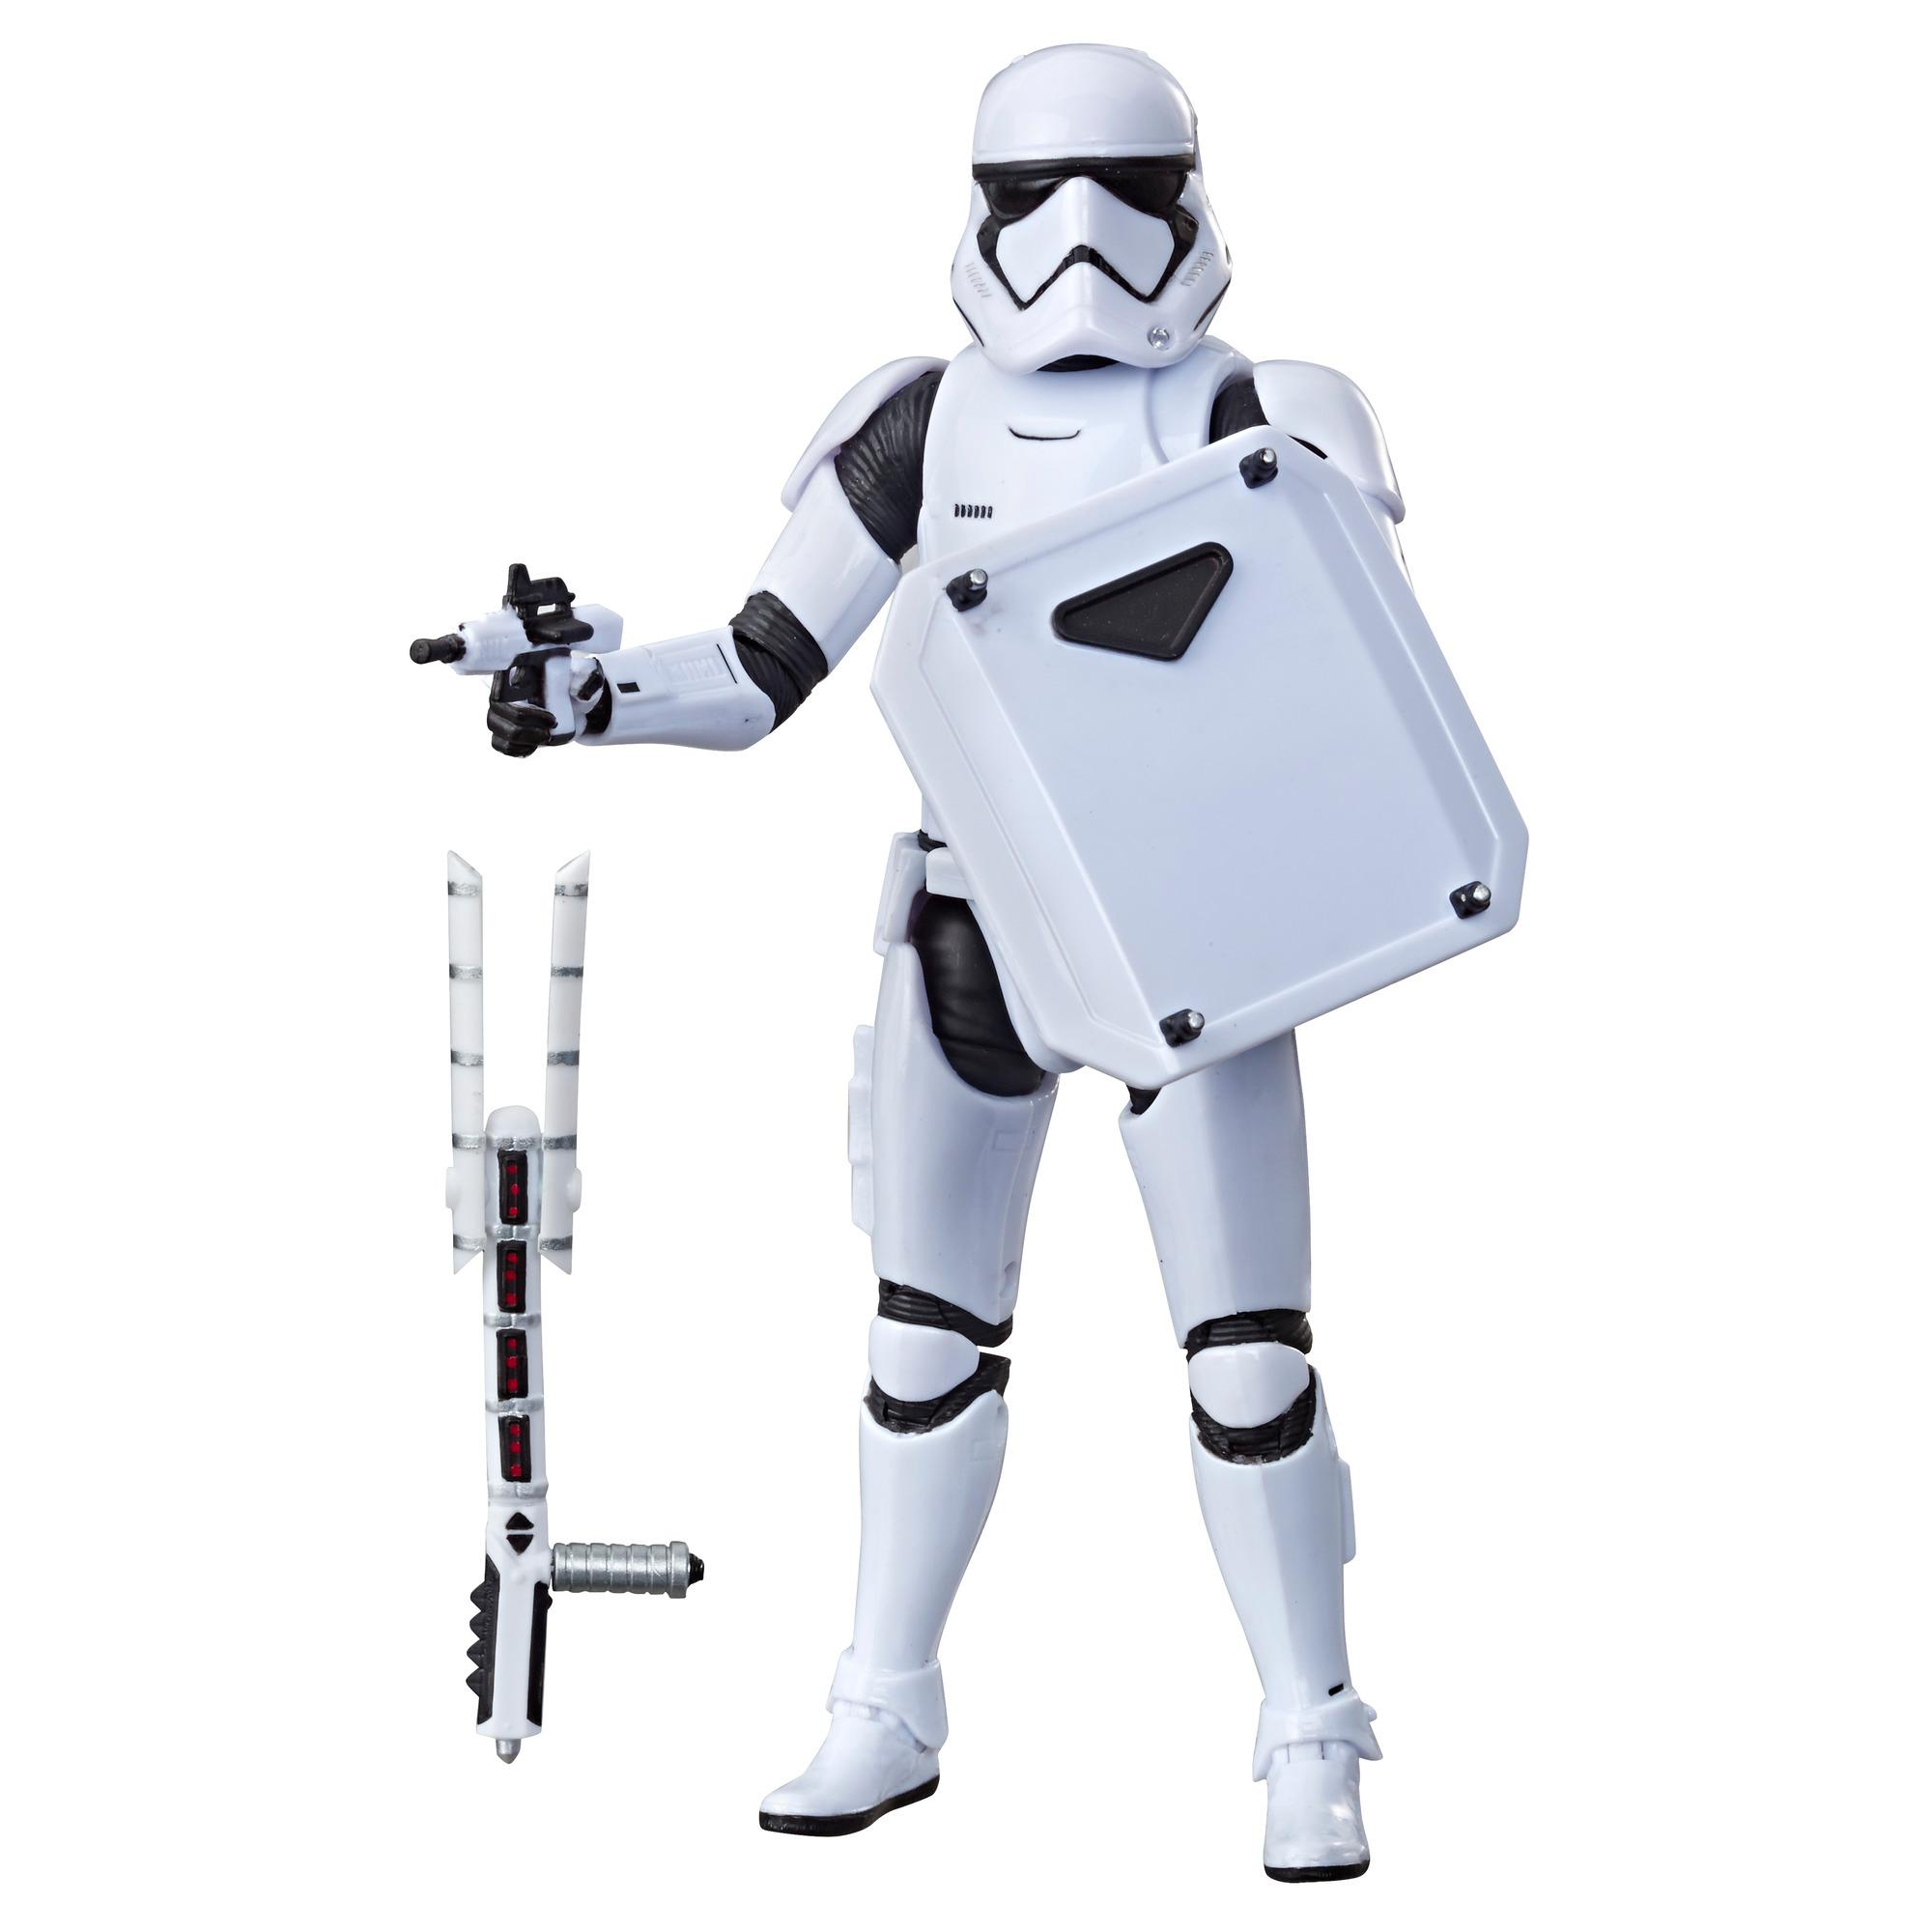 Star Wars The Black Series First Order Stormtrooper Toy 6 Inch Scale Collectible Action Figure Kids Ages 4 And Up Star Wars